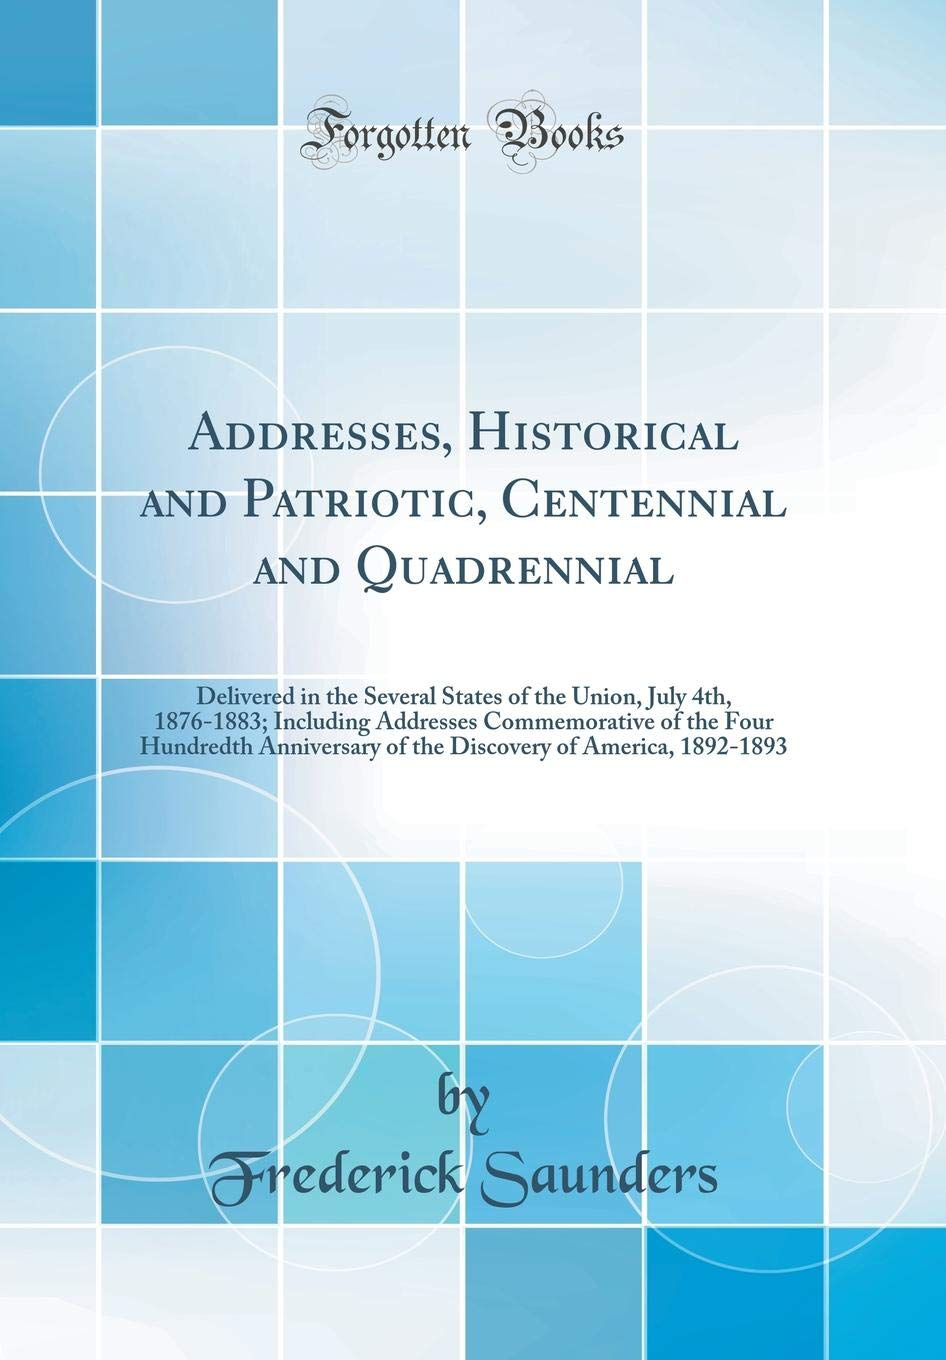 Download Addresses, Historical and Patriotic, Centennial and Quadrennial: Delivered in the Several States of the Union, July 4th, 1876-1883; Including ... of the Discovery of America, 1892-1893 pdf epub